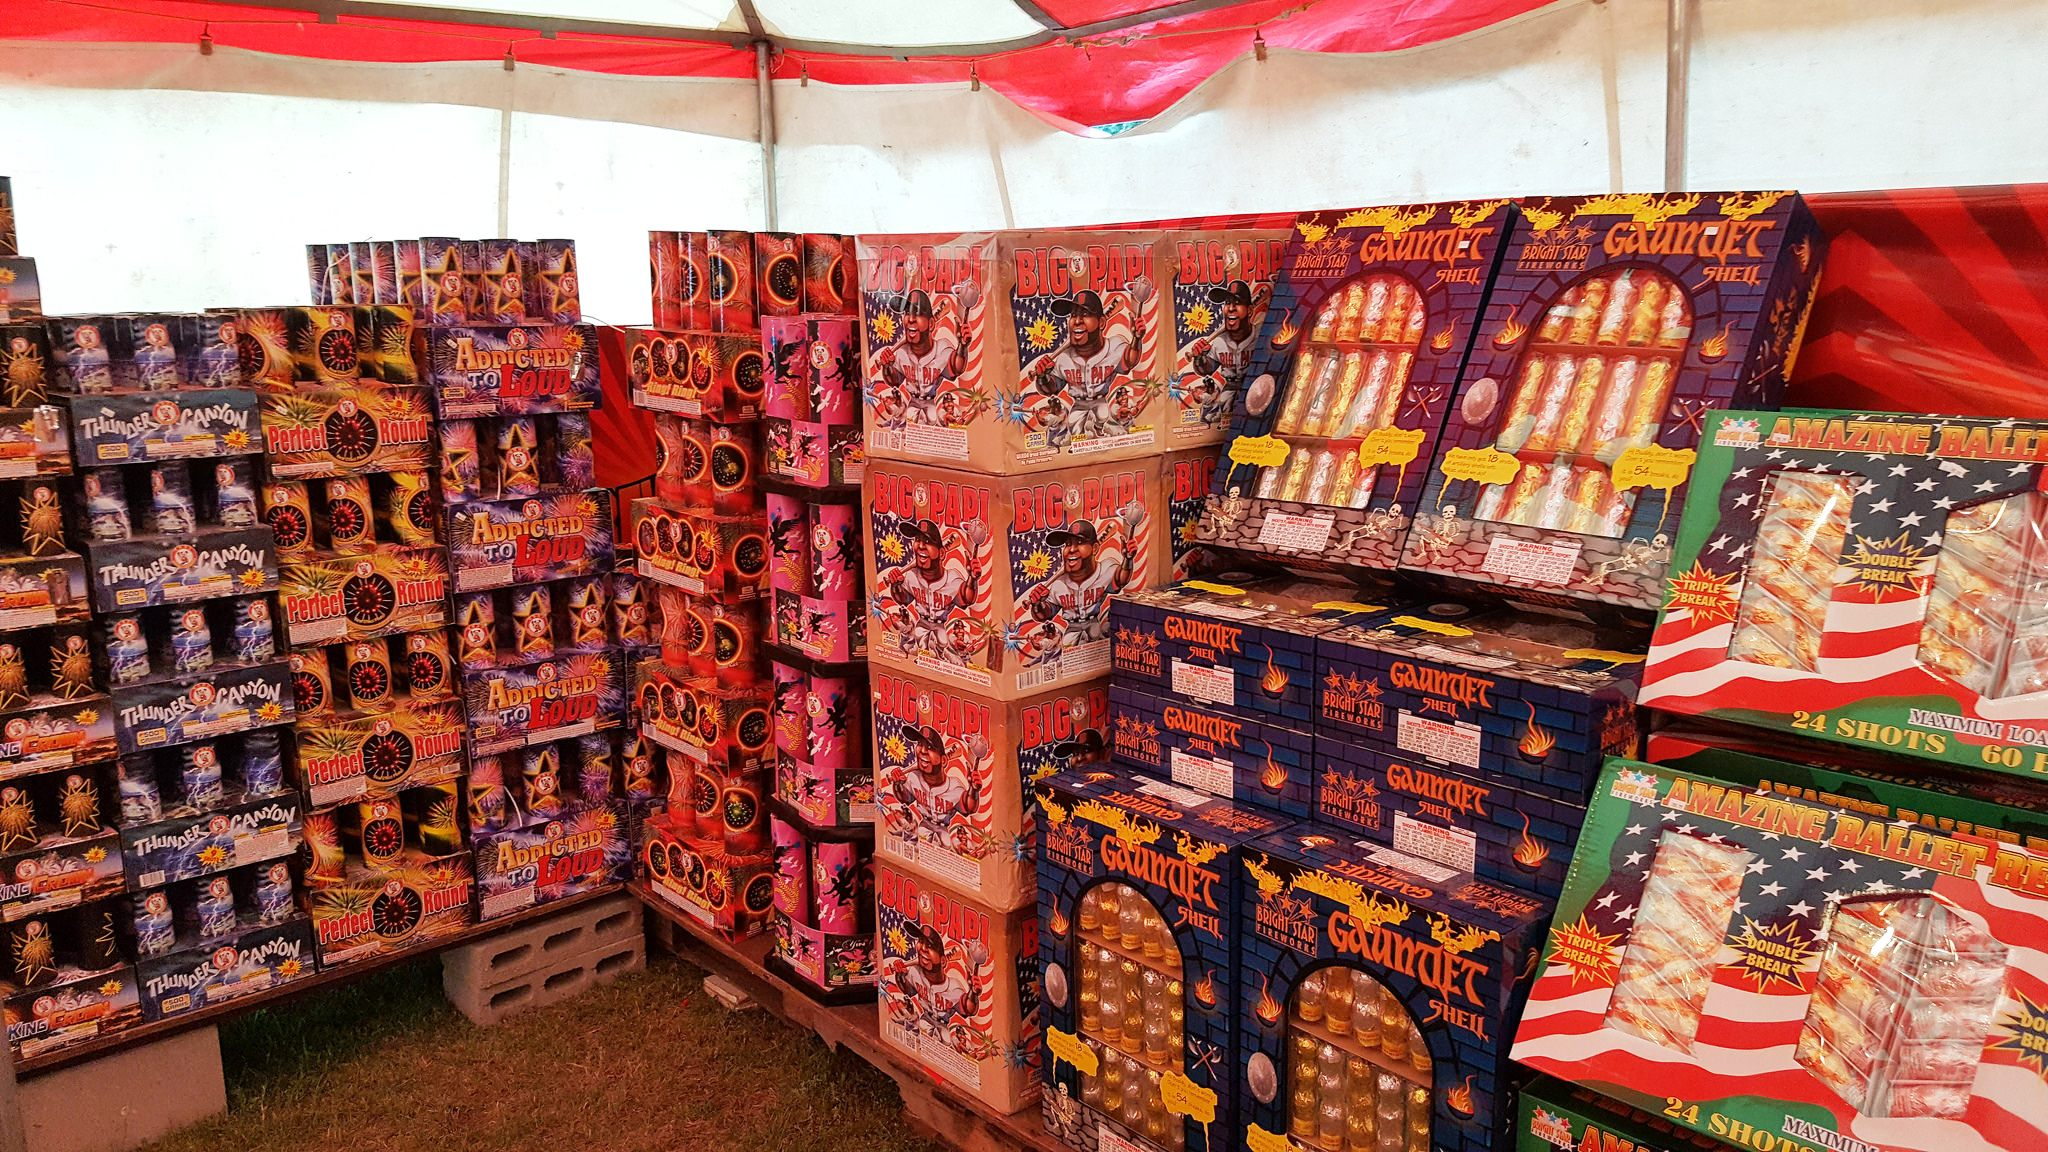 Giant Fireworks Tent Open in Spread Eagle Wisconsin! | Spread Eagle Fireworks - Retail Fireworks in Michigan and Wisconsin. & Giant Fireworks Tent Open in Spread Eagle Wisconsin! | Spread ...